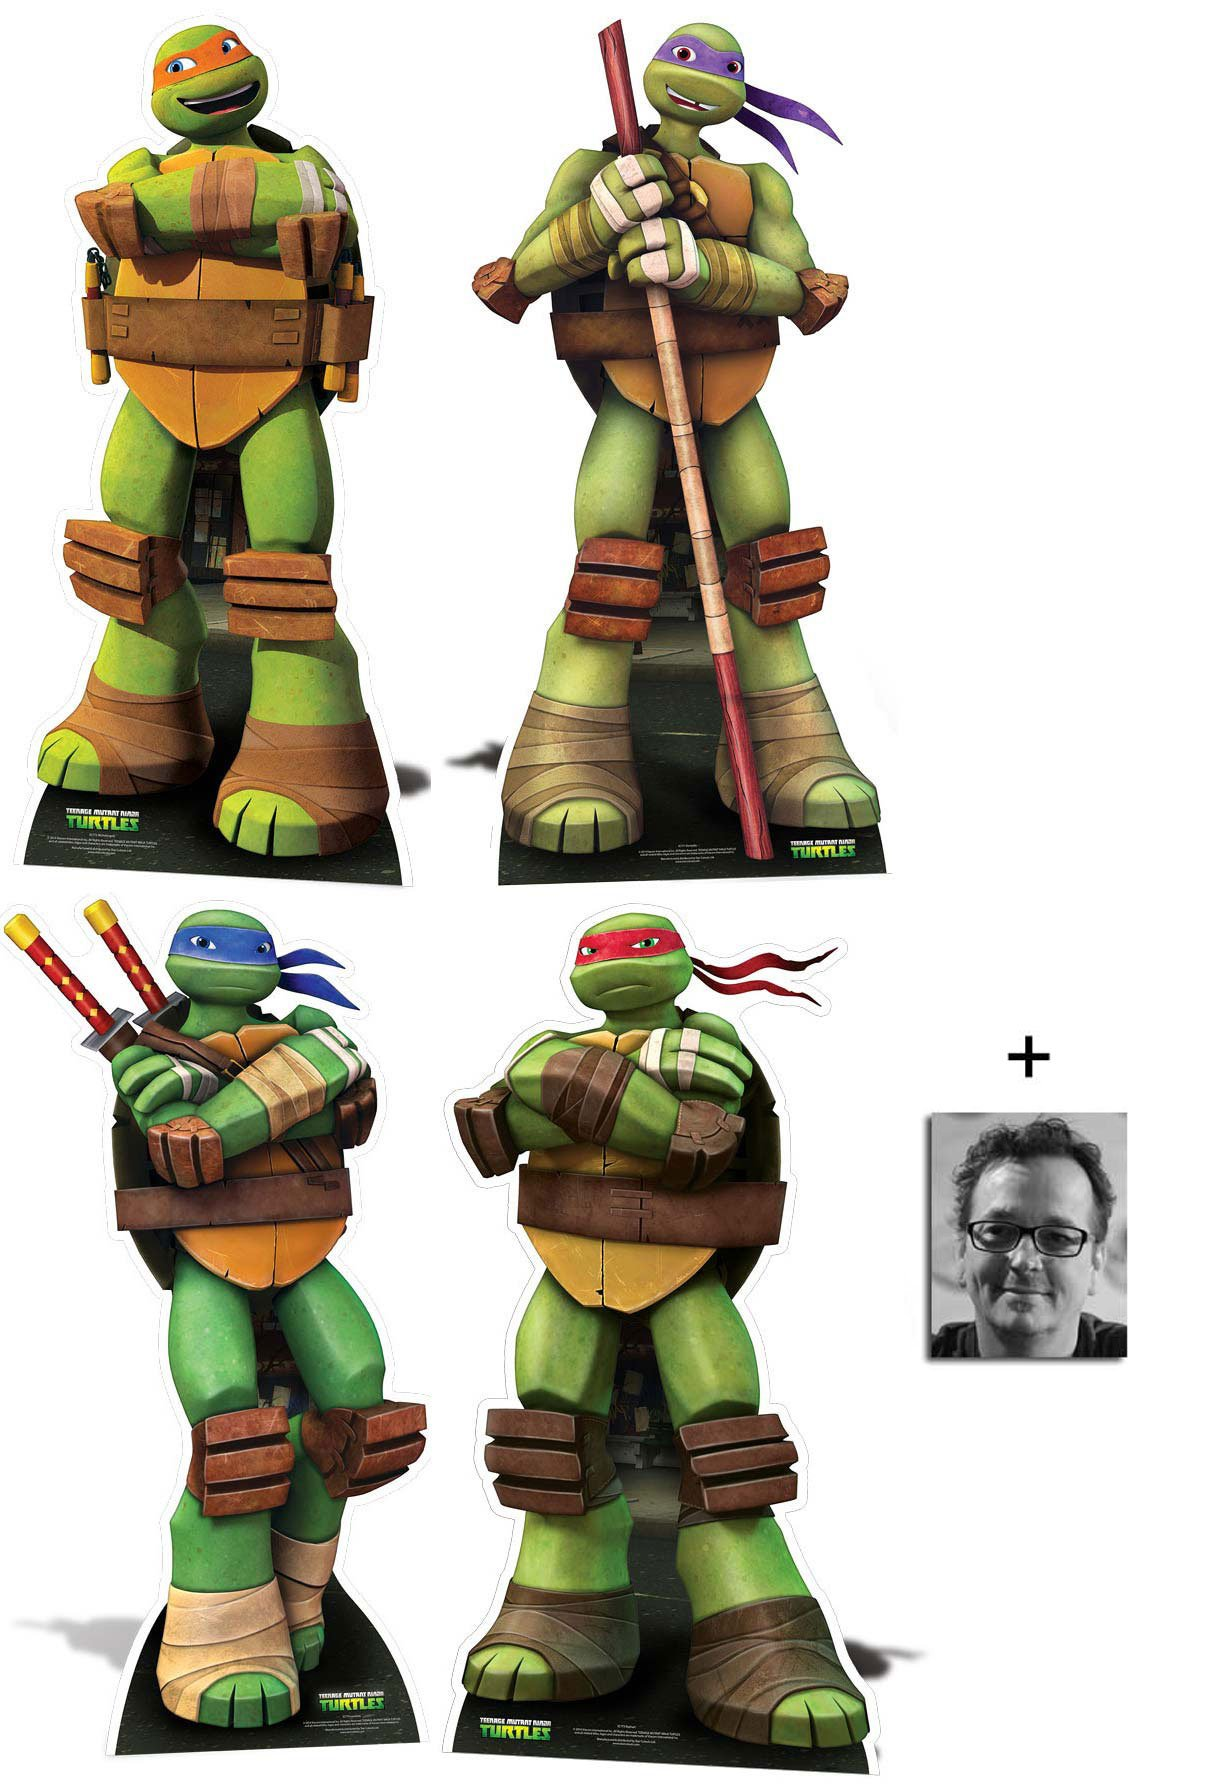 Fan Pack - Teenage Mutant Ninja Turtles Lifesize Cardboard Cutout / Standee / Standup - Complete Set of 4 (Leonardo, Raphael, Michelangelo and Donatello) - Includes 8x10 (20x25cm) Photo